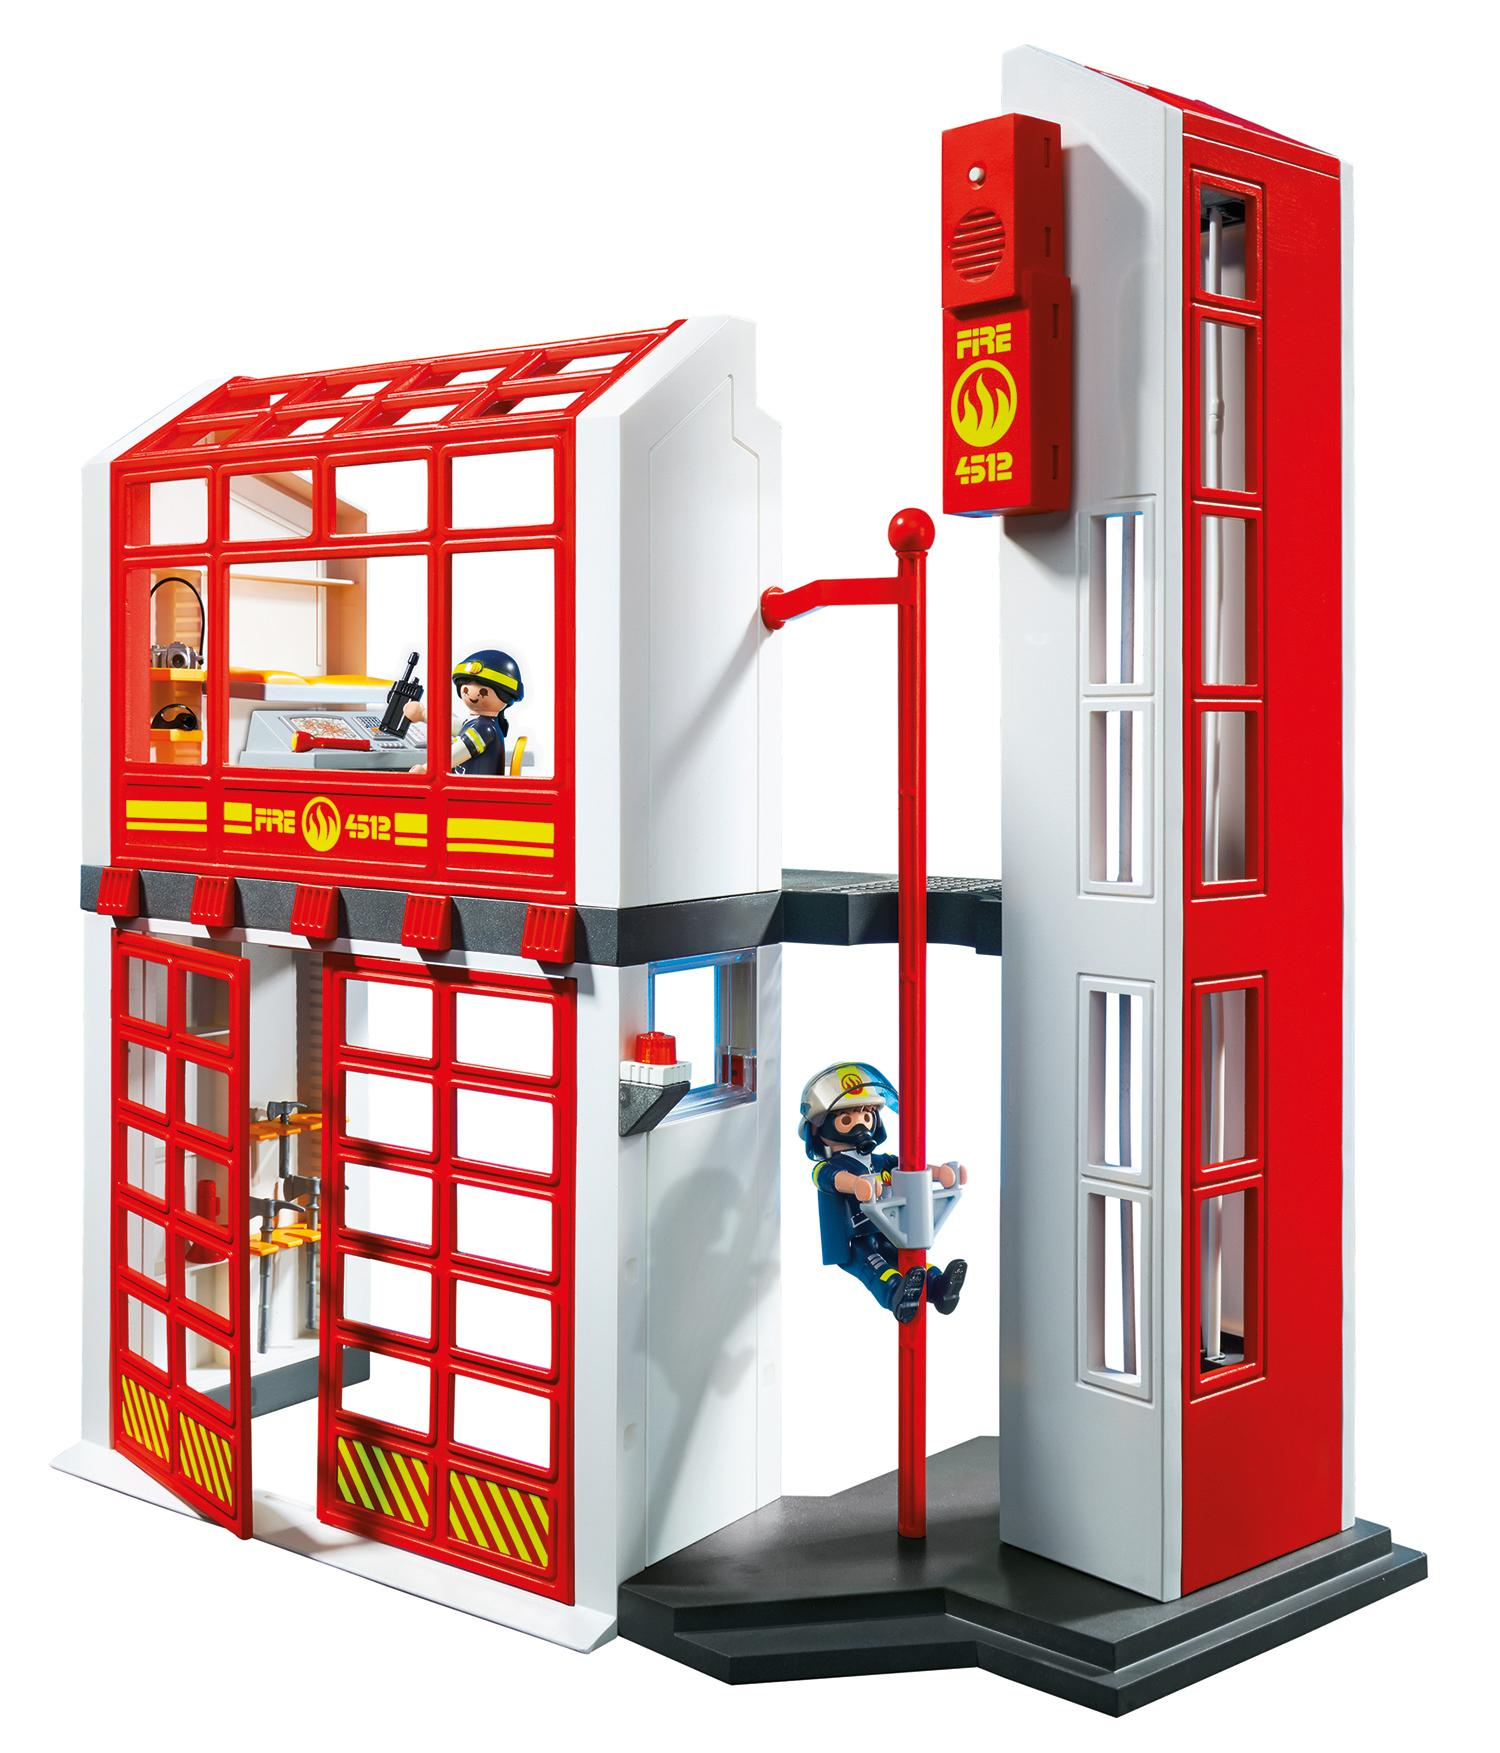 Amazon.com: PLAYMOBIL Fire Station with Alarm Set: Toys & Games